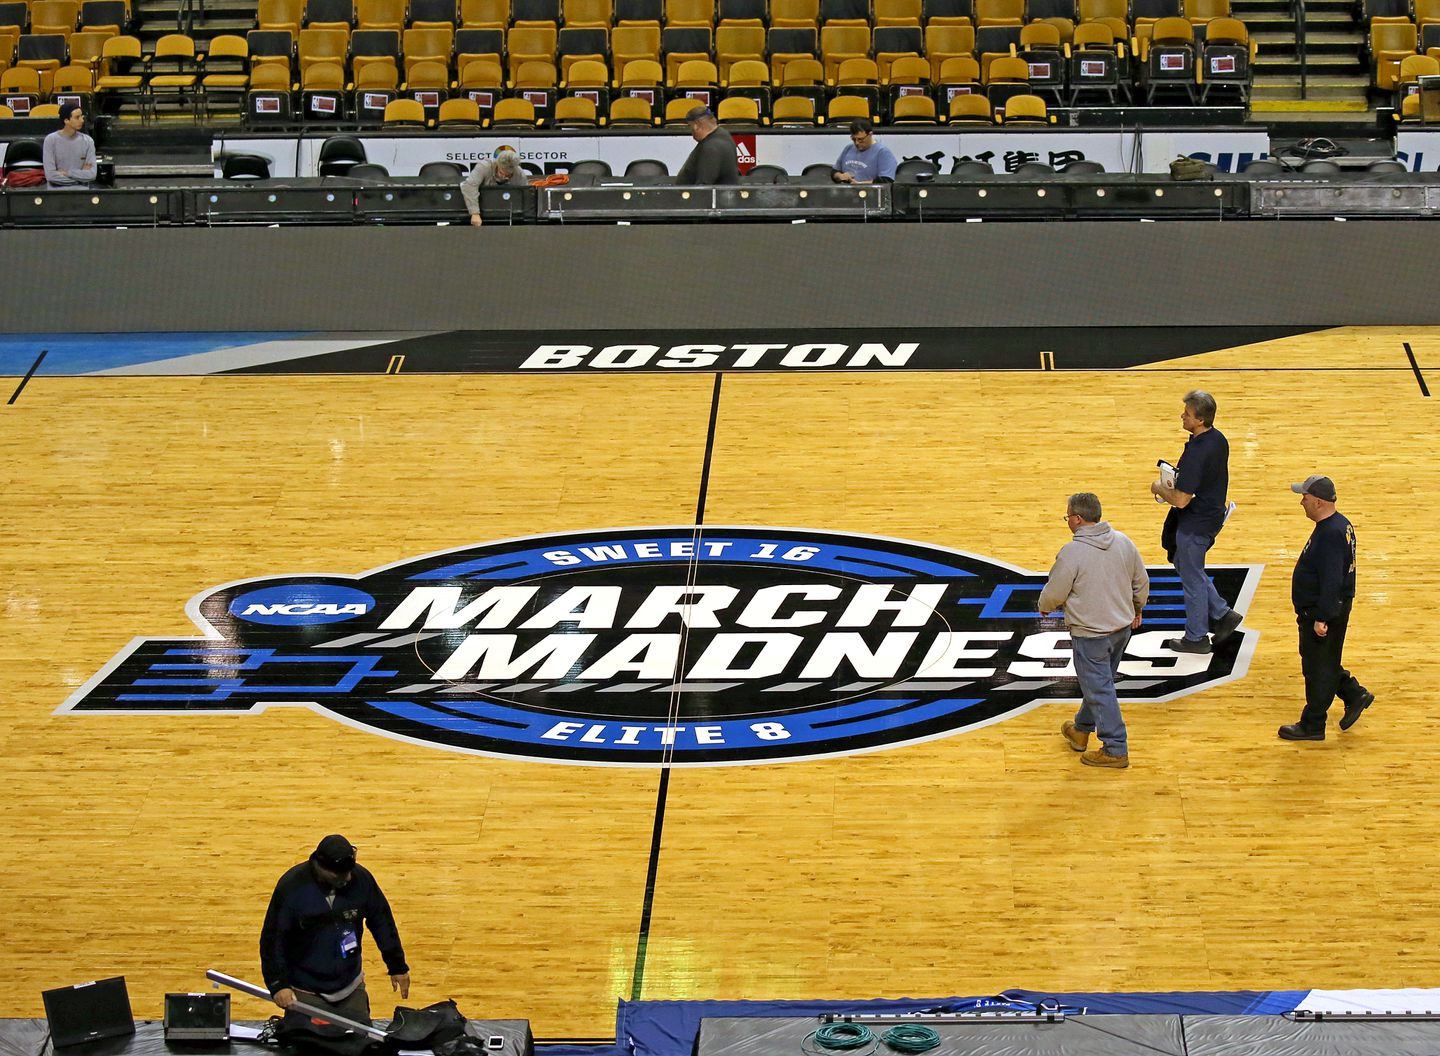 Here S A Look At The Ncaa Tournament Court At Td Garden The